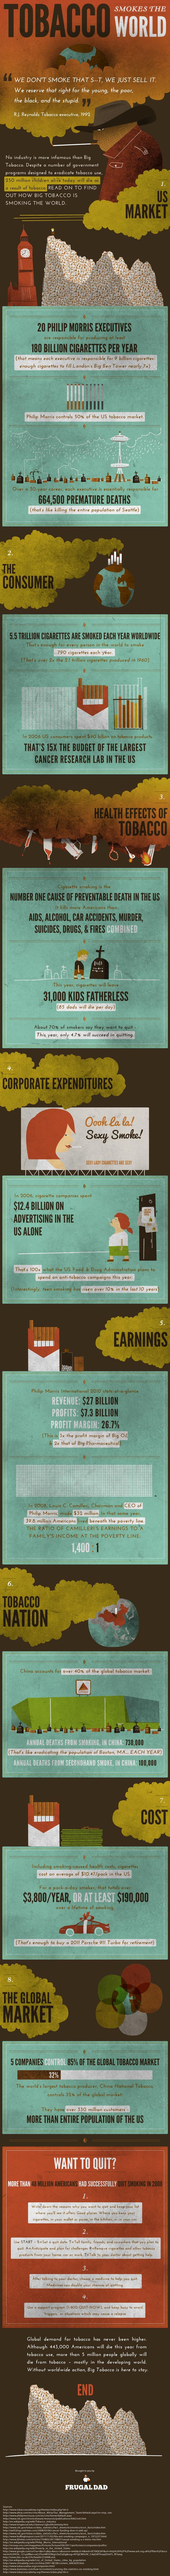 Nice infographic about the impact of tobacco, from FrugalDad